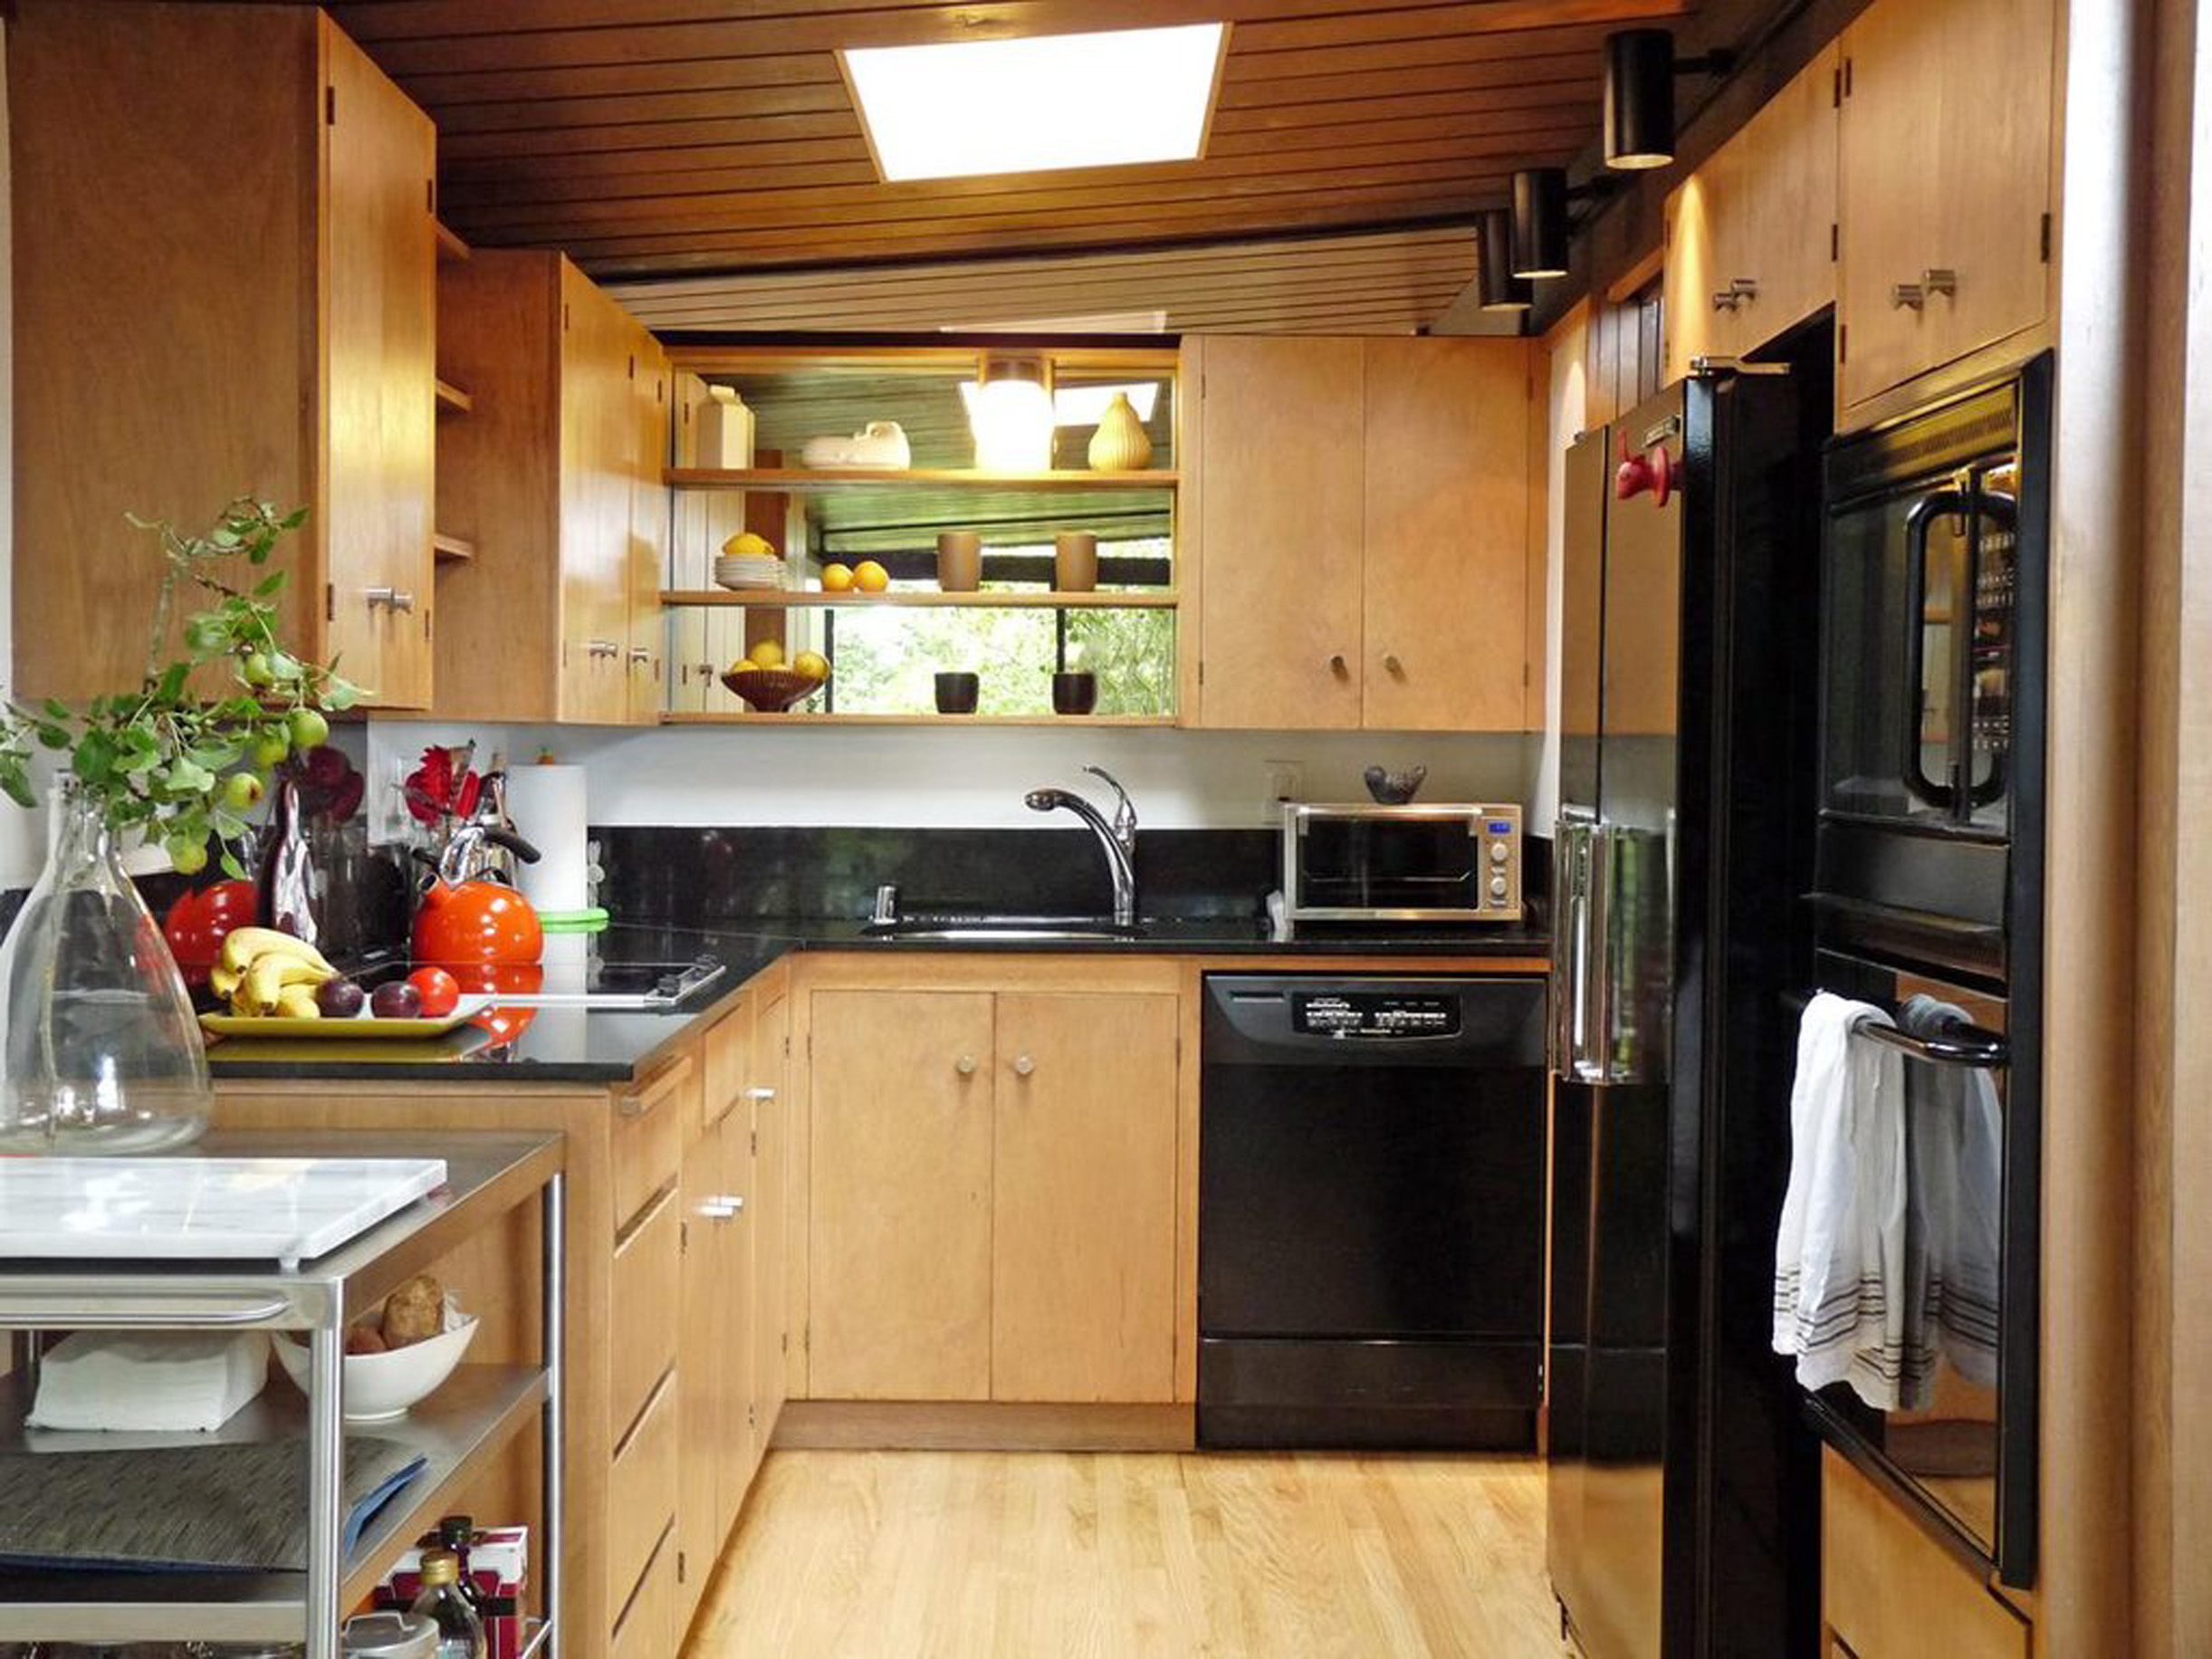 Inspiring natural secret of brown woody kitchen design in apartment lovely and special ideas for apartement kitchen design